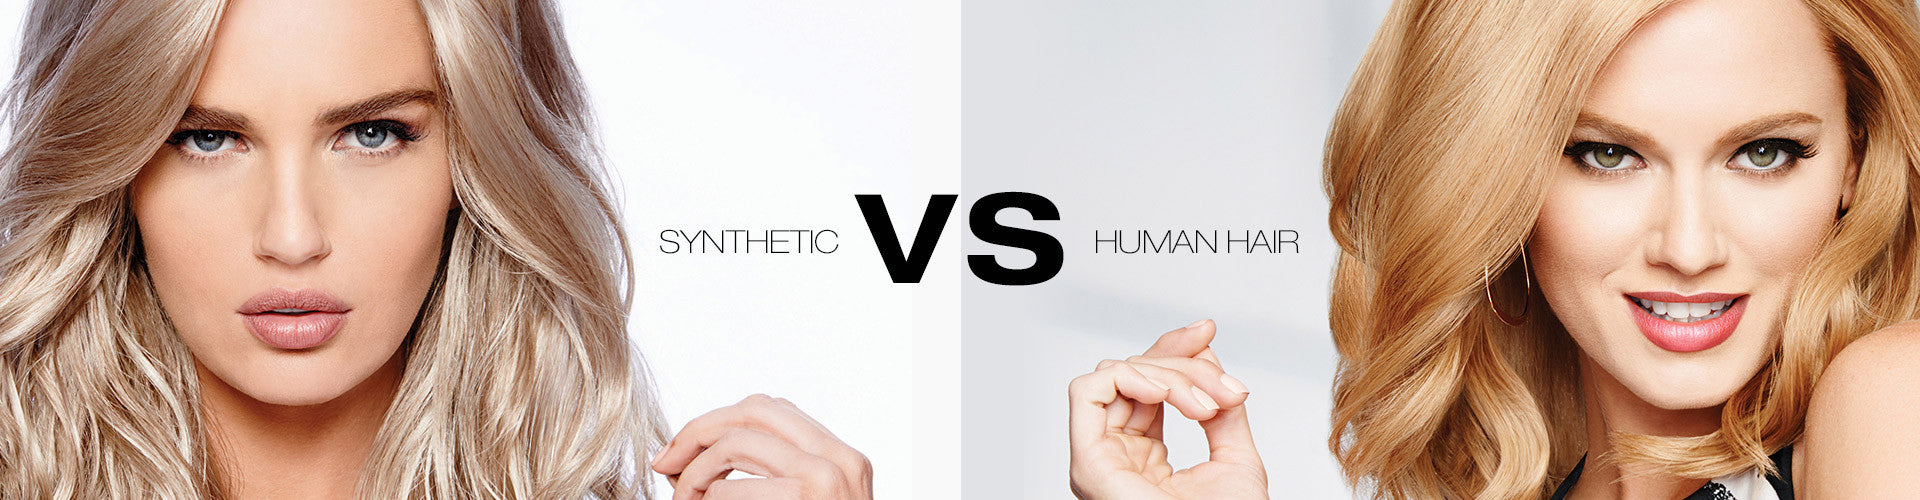 Human Hair & Synthetic Hair Wigs - What's the difference?